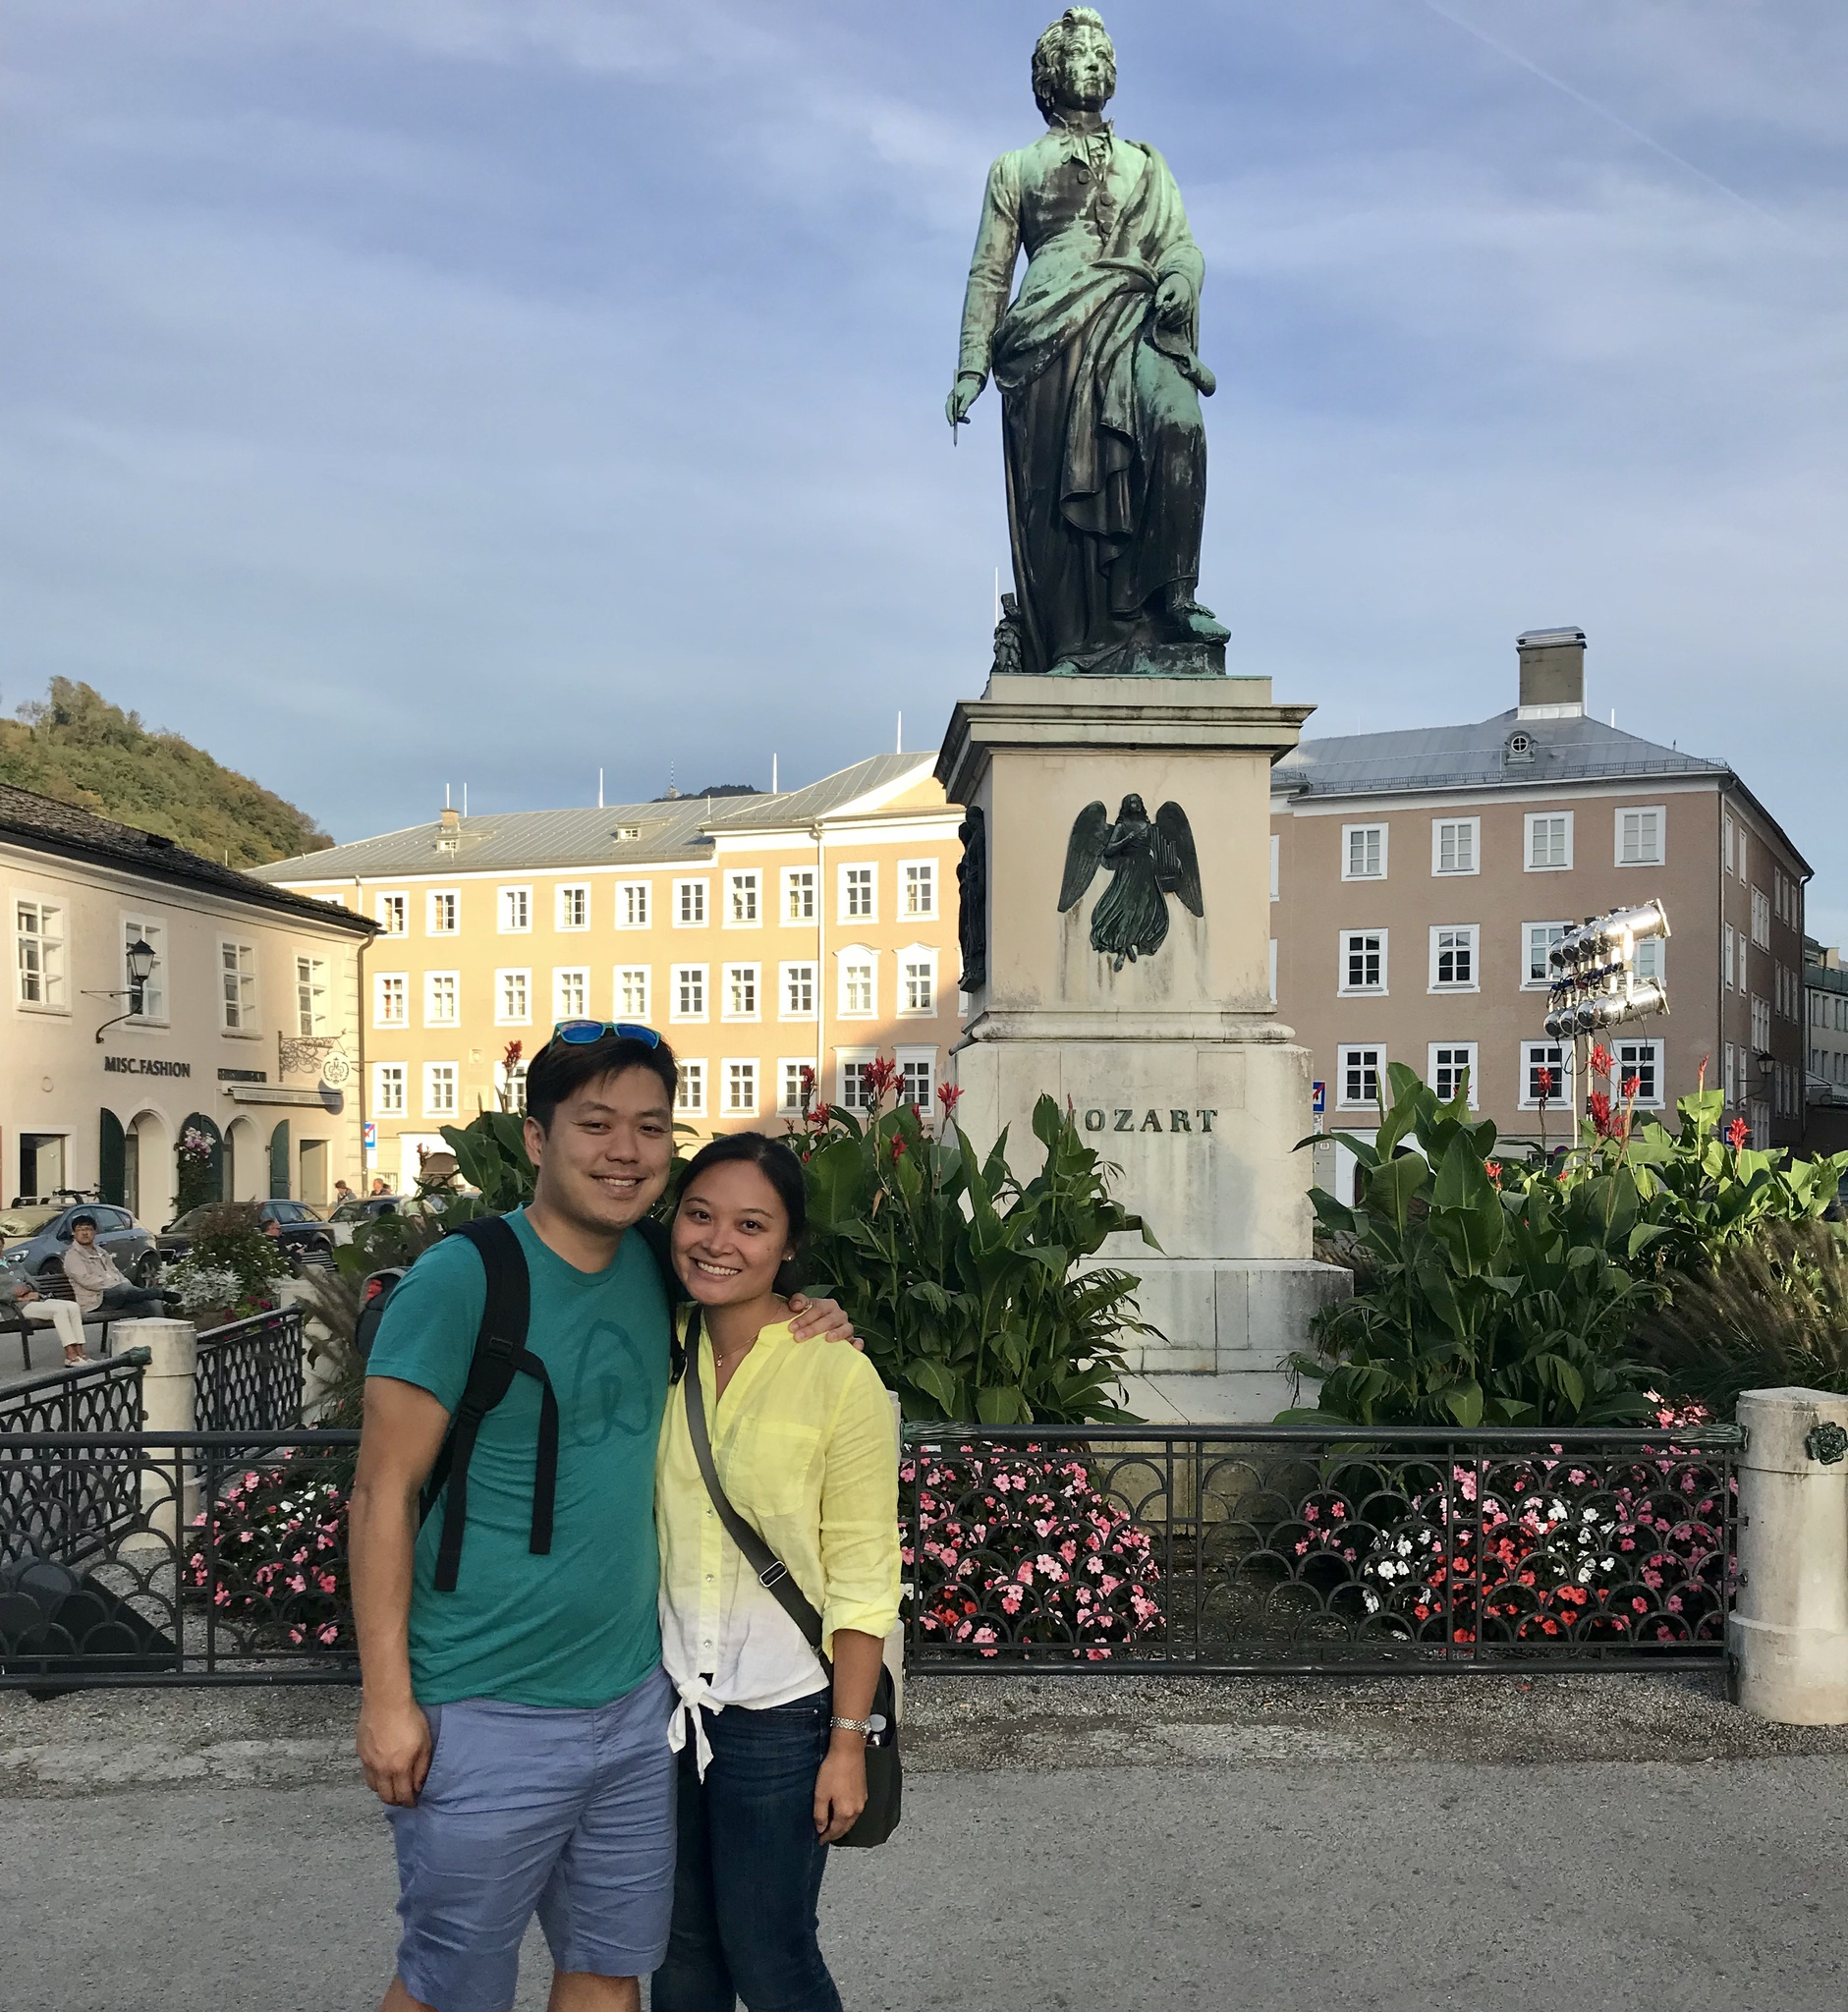 Paying tribute to Mozart in Salzburg